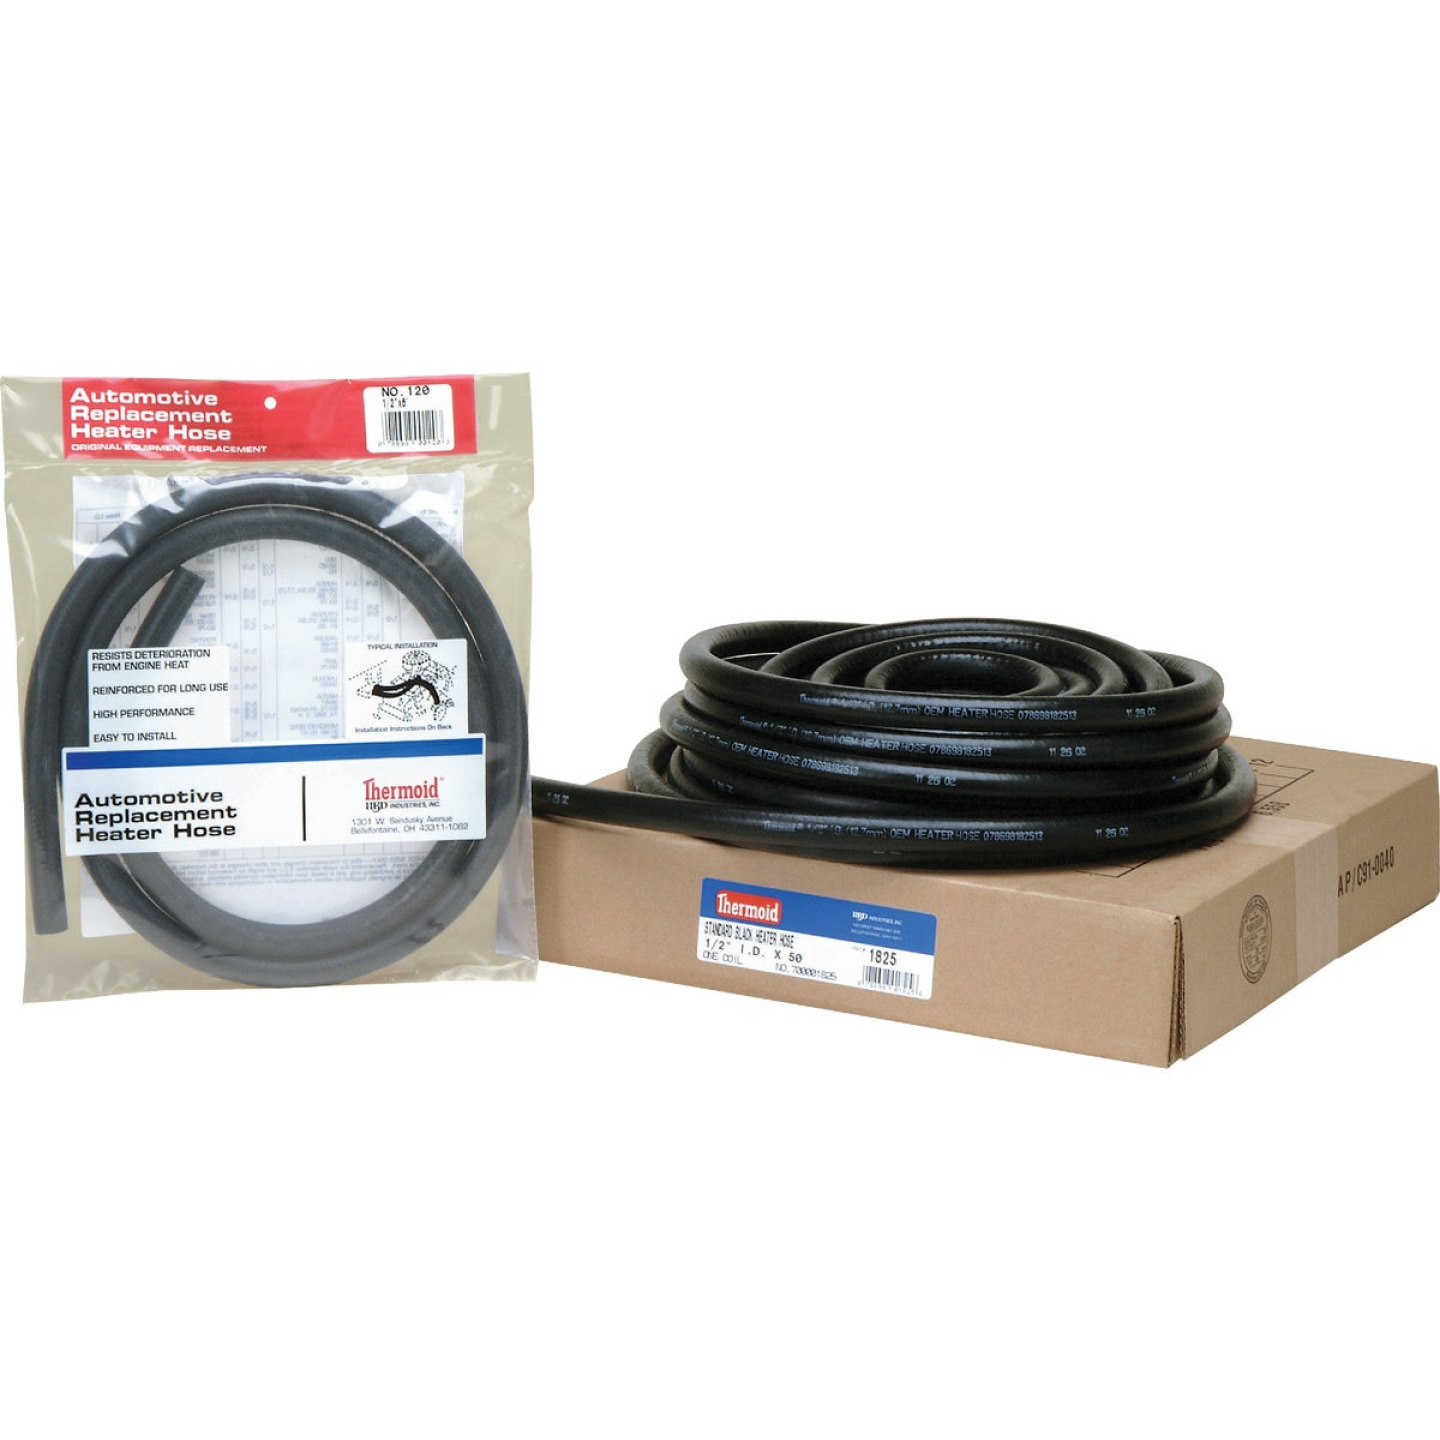 Thermoid 1/2 In. ID x 6 Ft. L. Auto Heater Hose Image 1